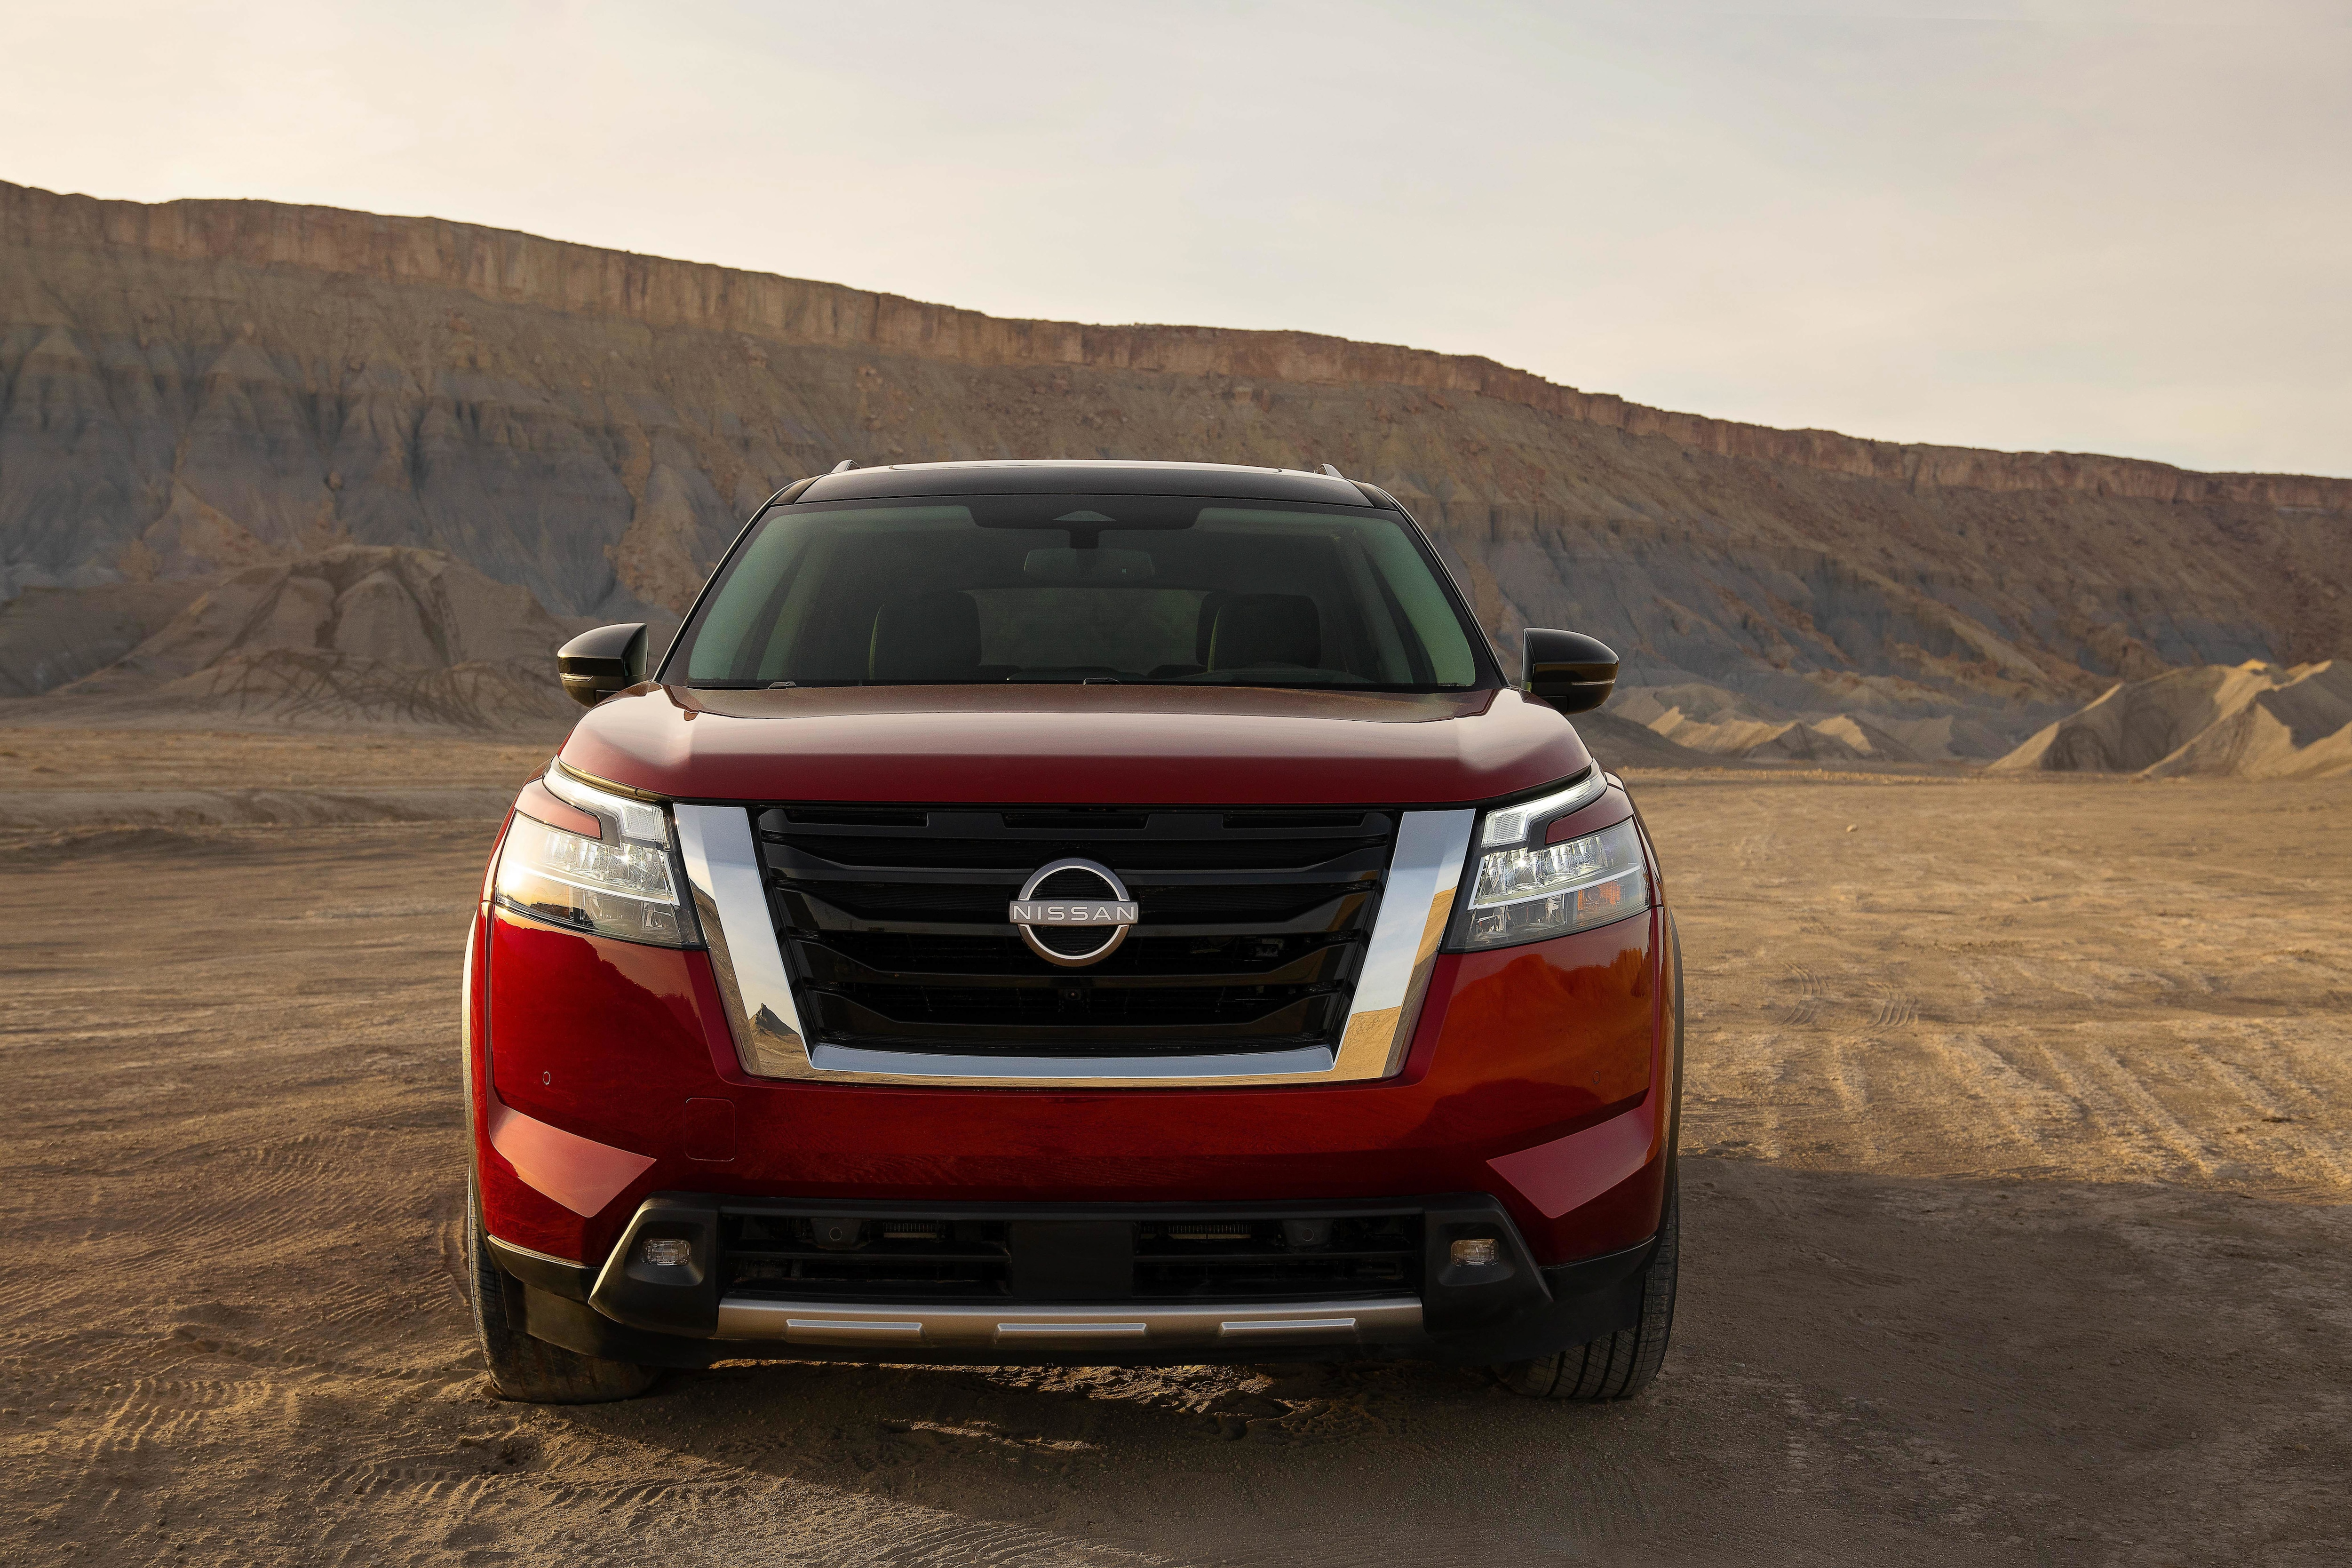 It gets larger wheels, V-motion grille with a three-slot grille incorporated as an homage to the original Pathfinder, C-shaped headlights and floating roofline. Standard LED headlights include slim upper DRLs.